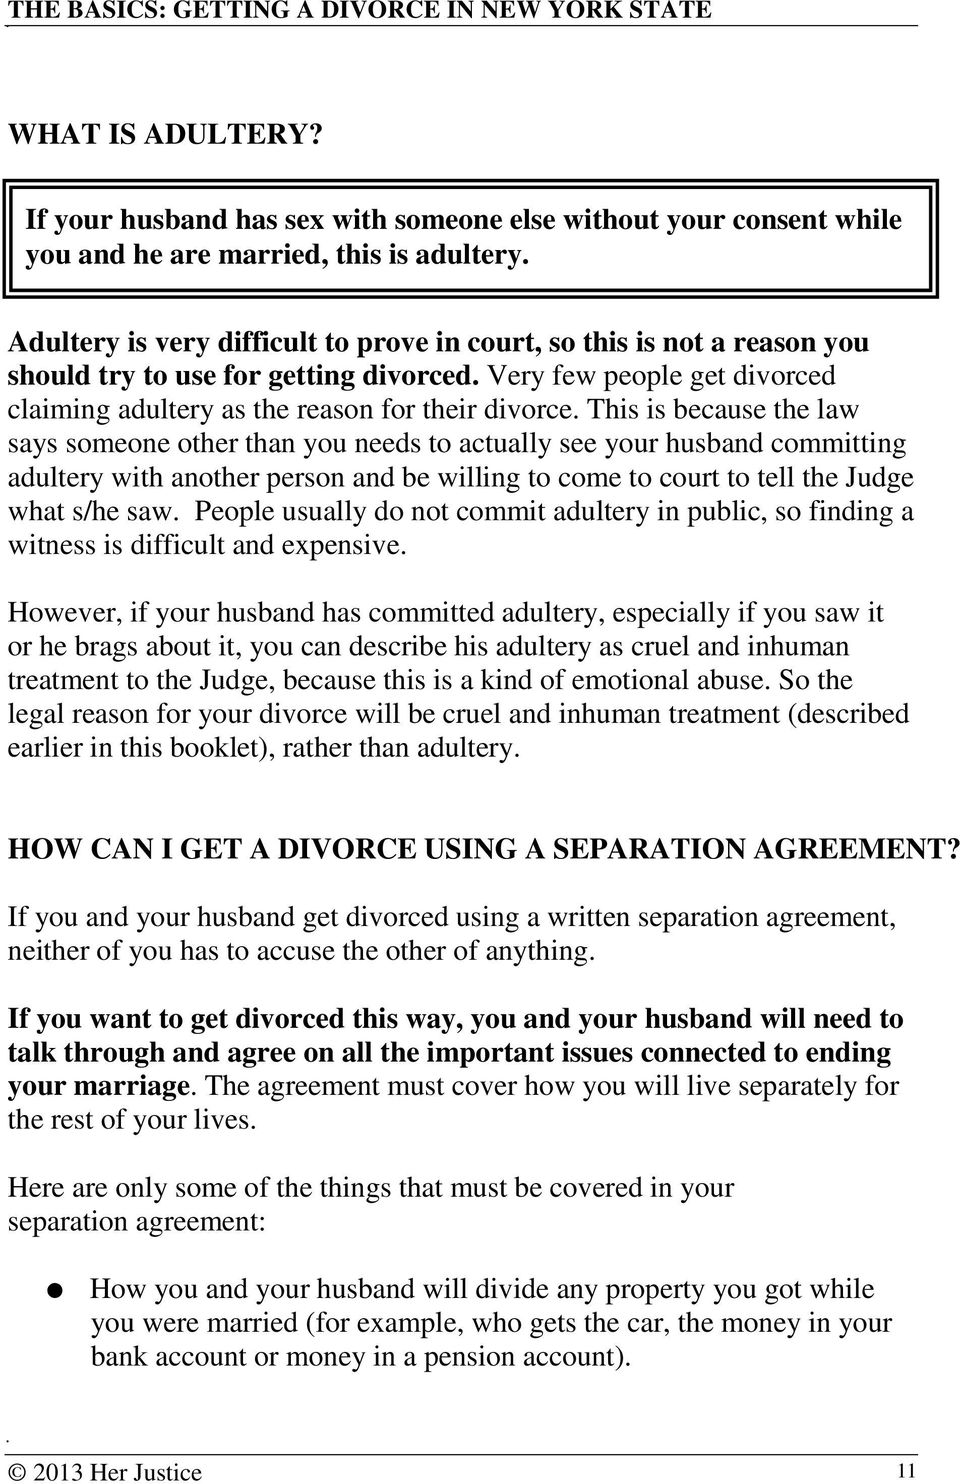 The Basics Getting A Divorce In New York State Pdf